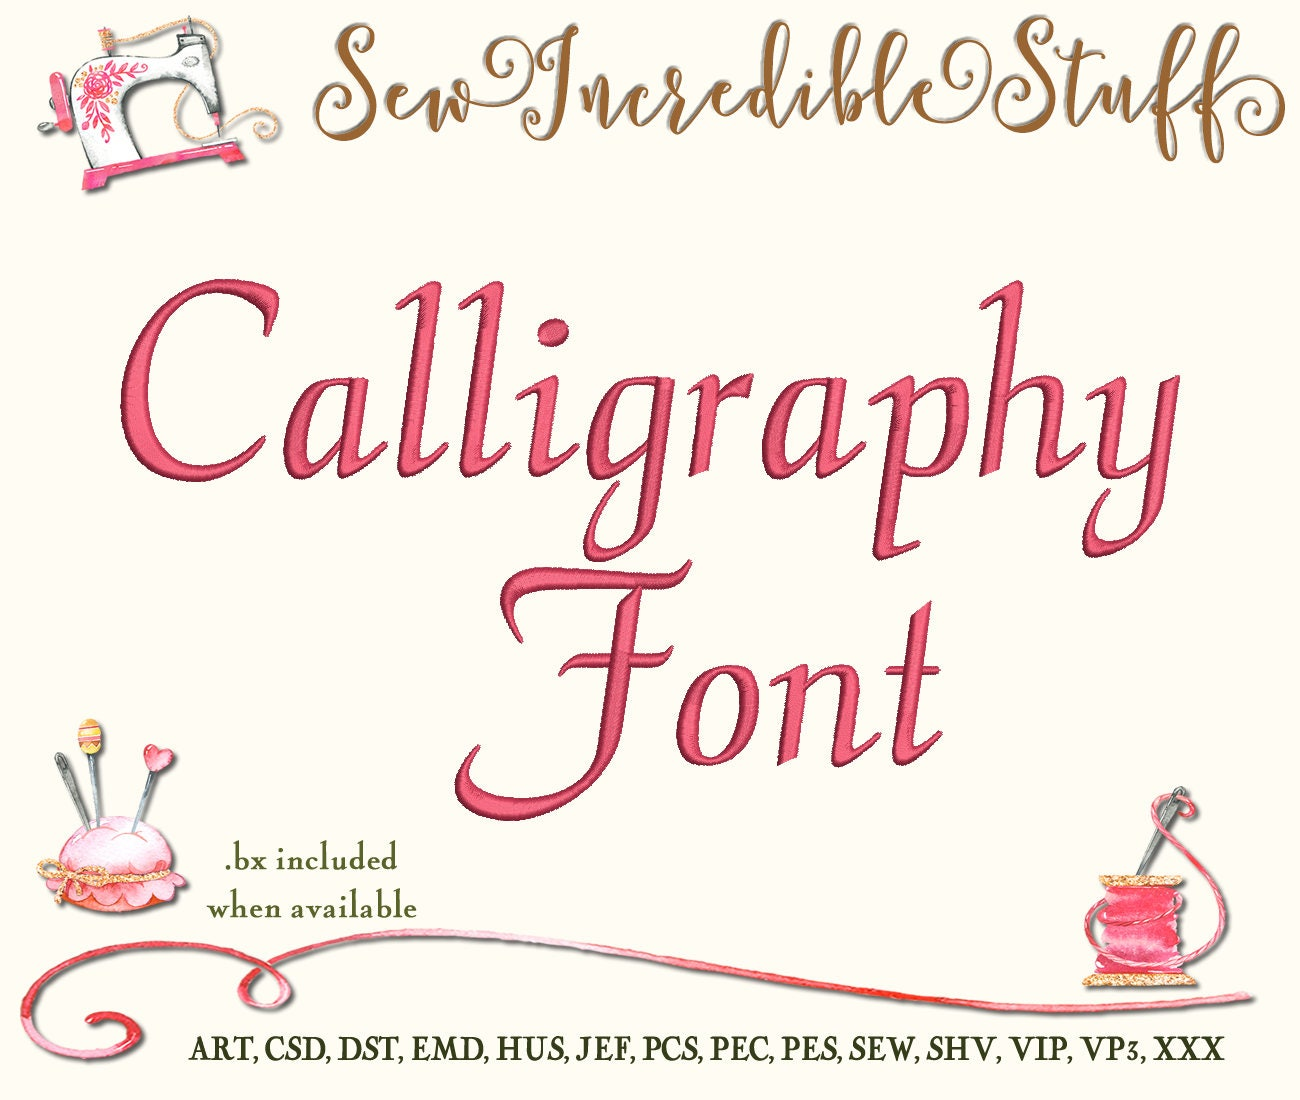 Calligraphy script machine embroidery font from